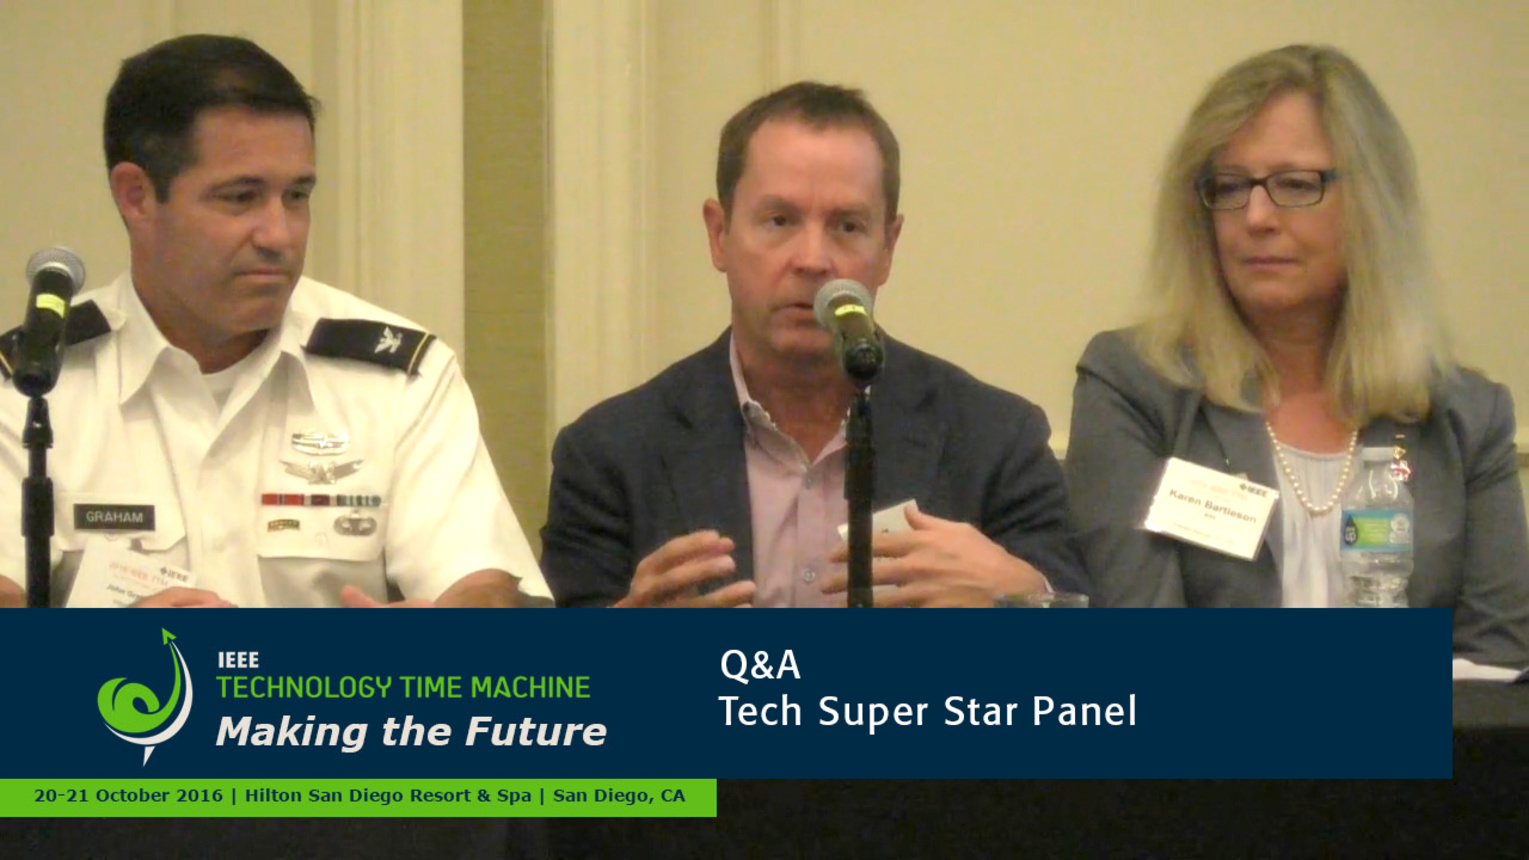 Tech Super Stars Panelist - Q&A: 2016 Technology Time Machine